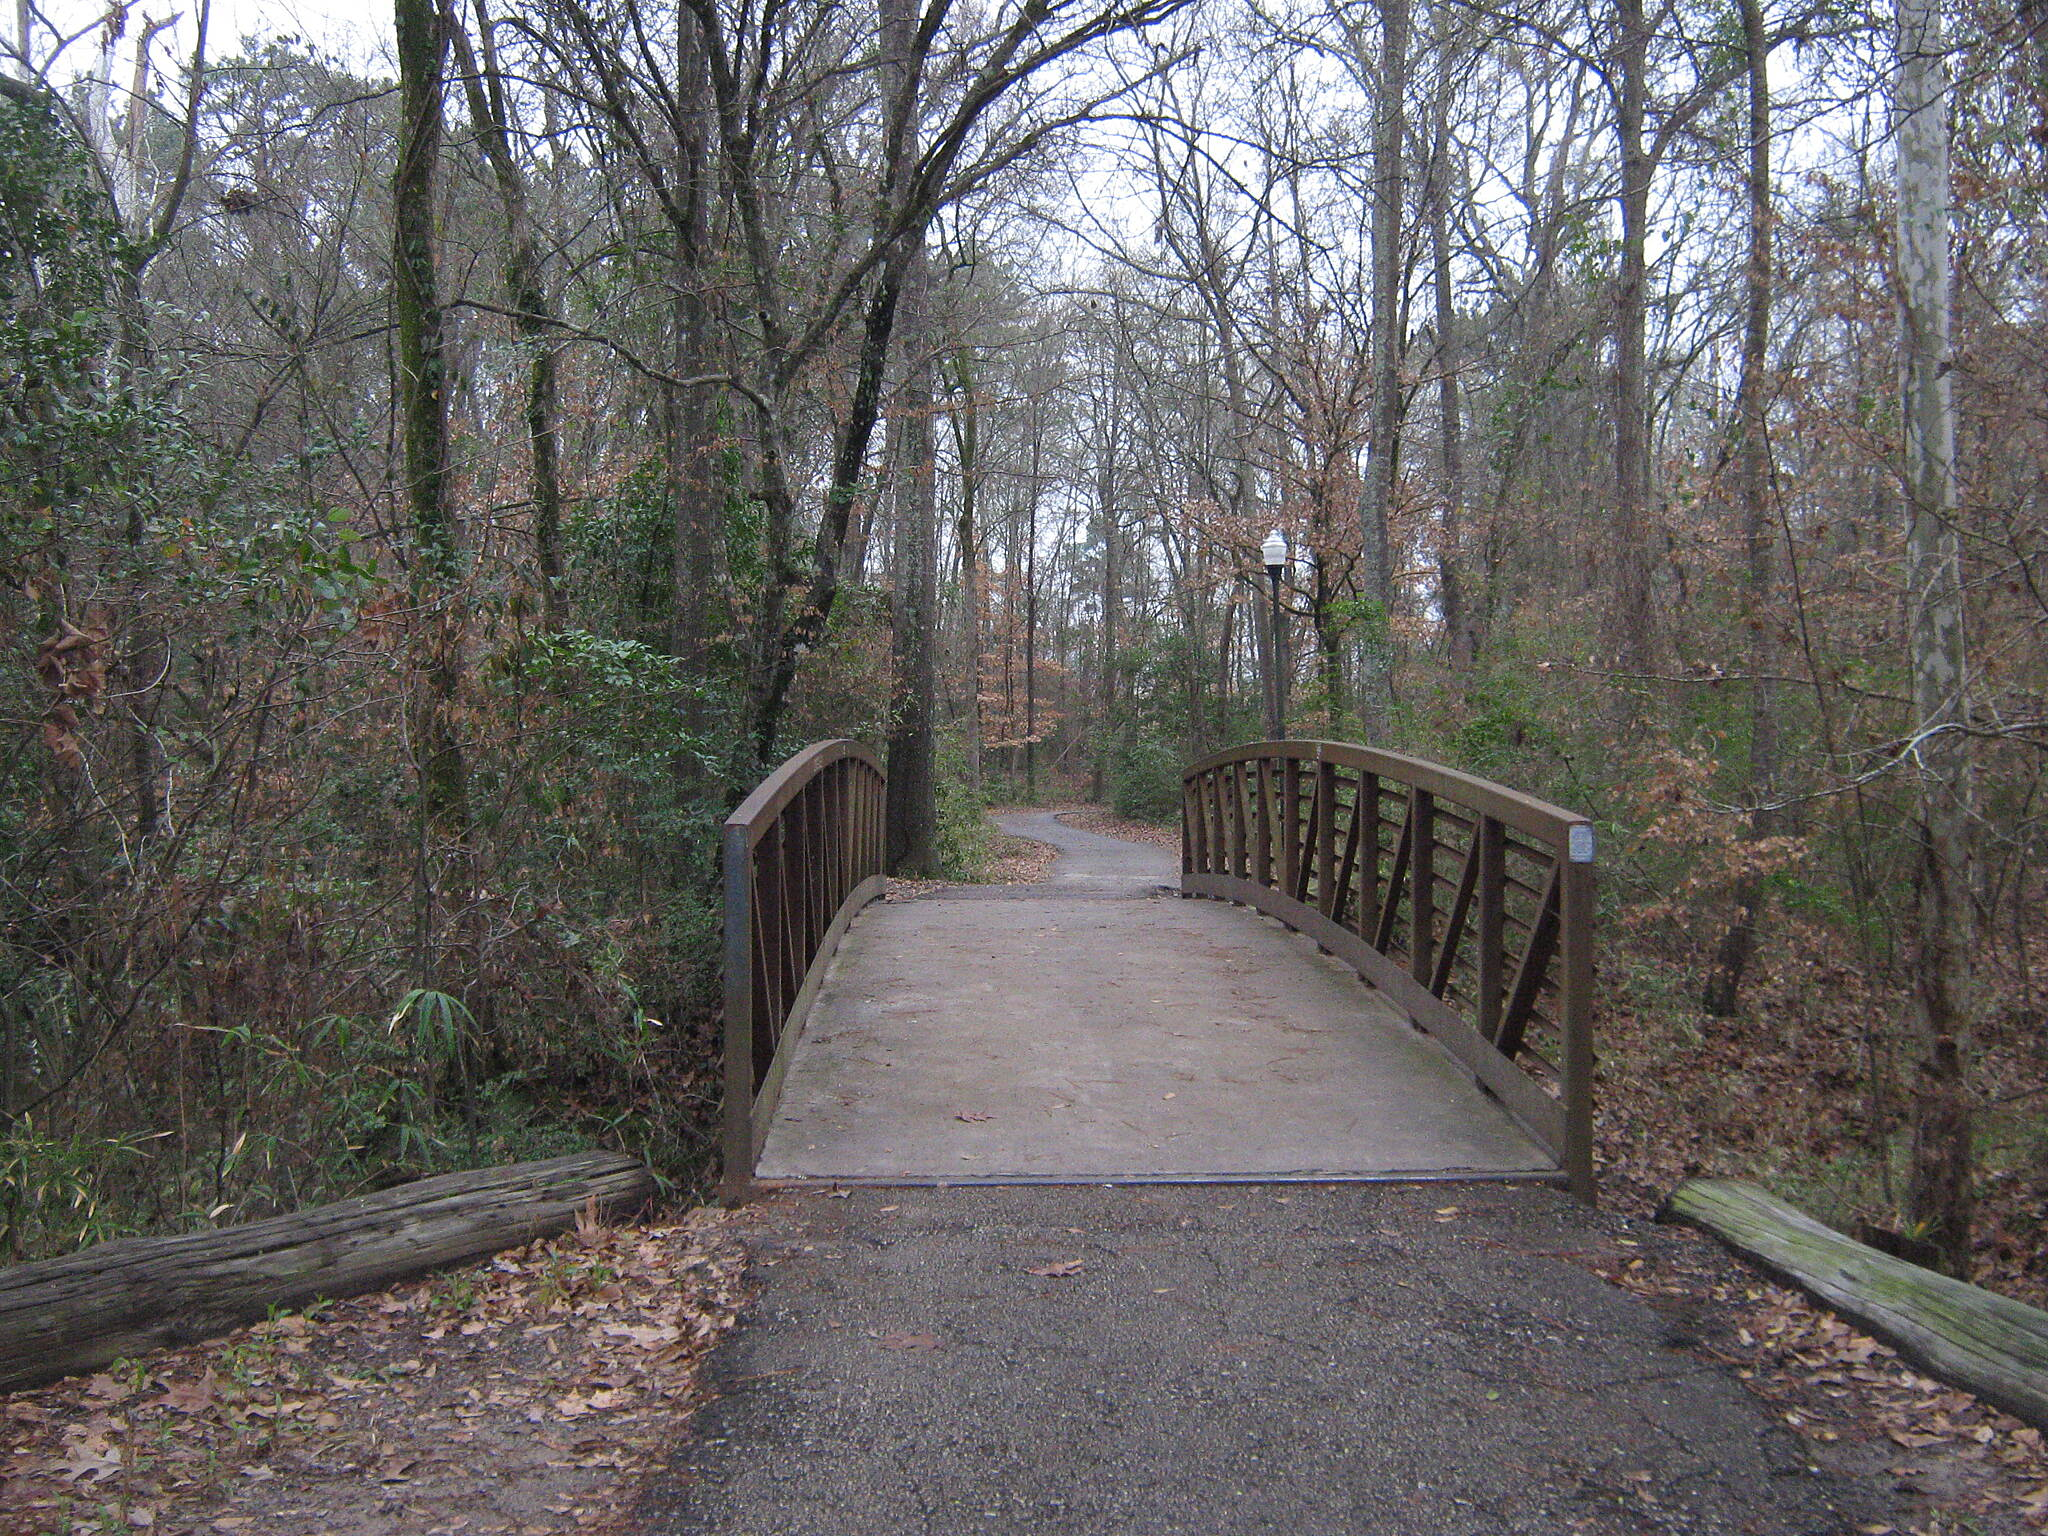 Azalea Trail Azalea Trail - Lufkin The Bridge over a small creek.